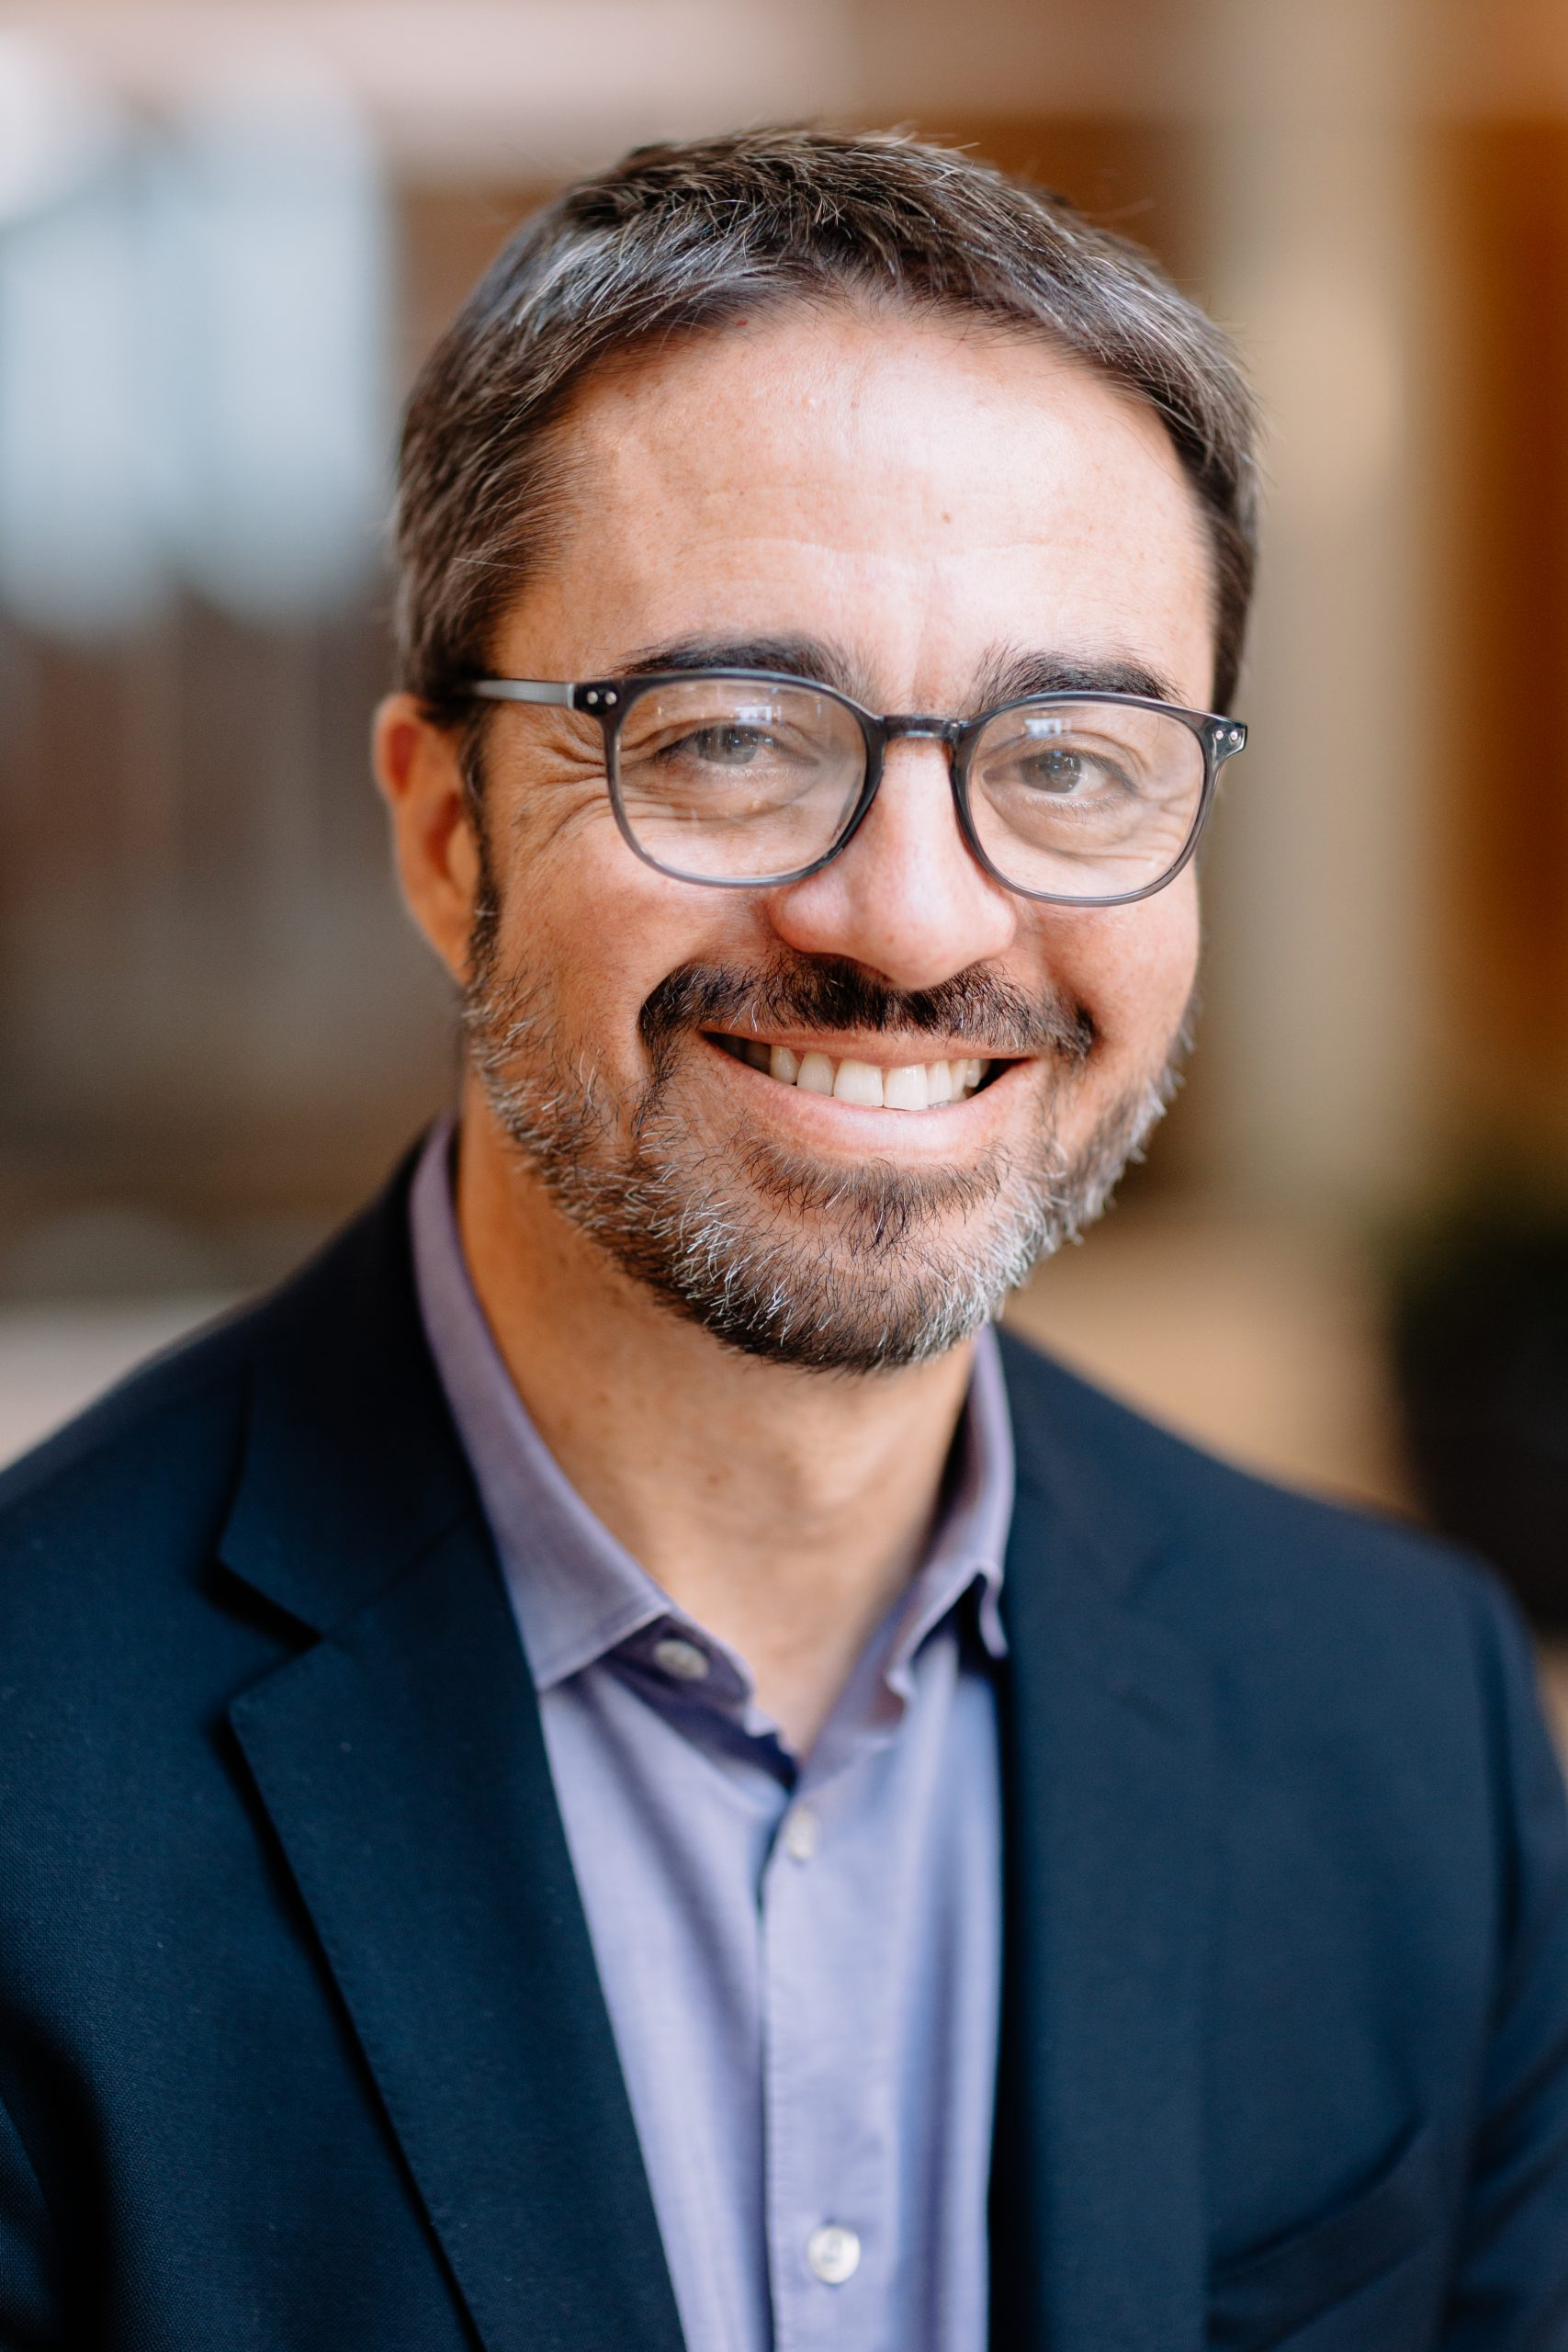 Neuer CTO bei Rockwell Automation